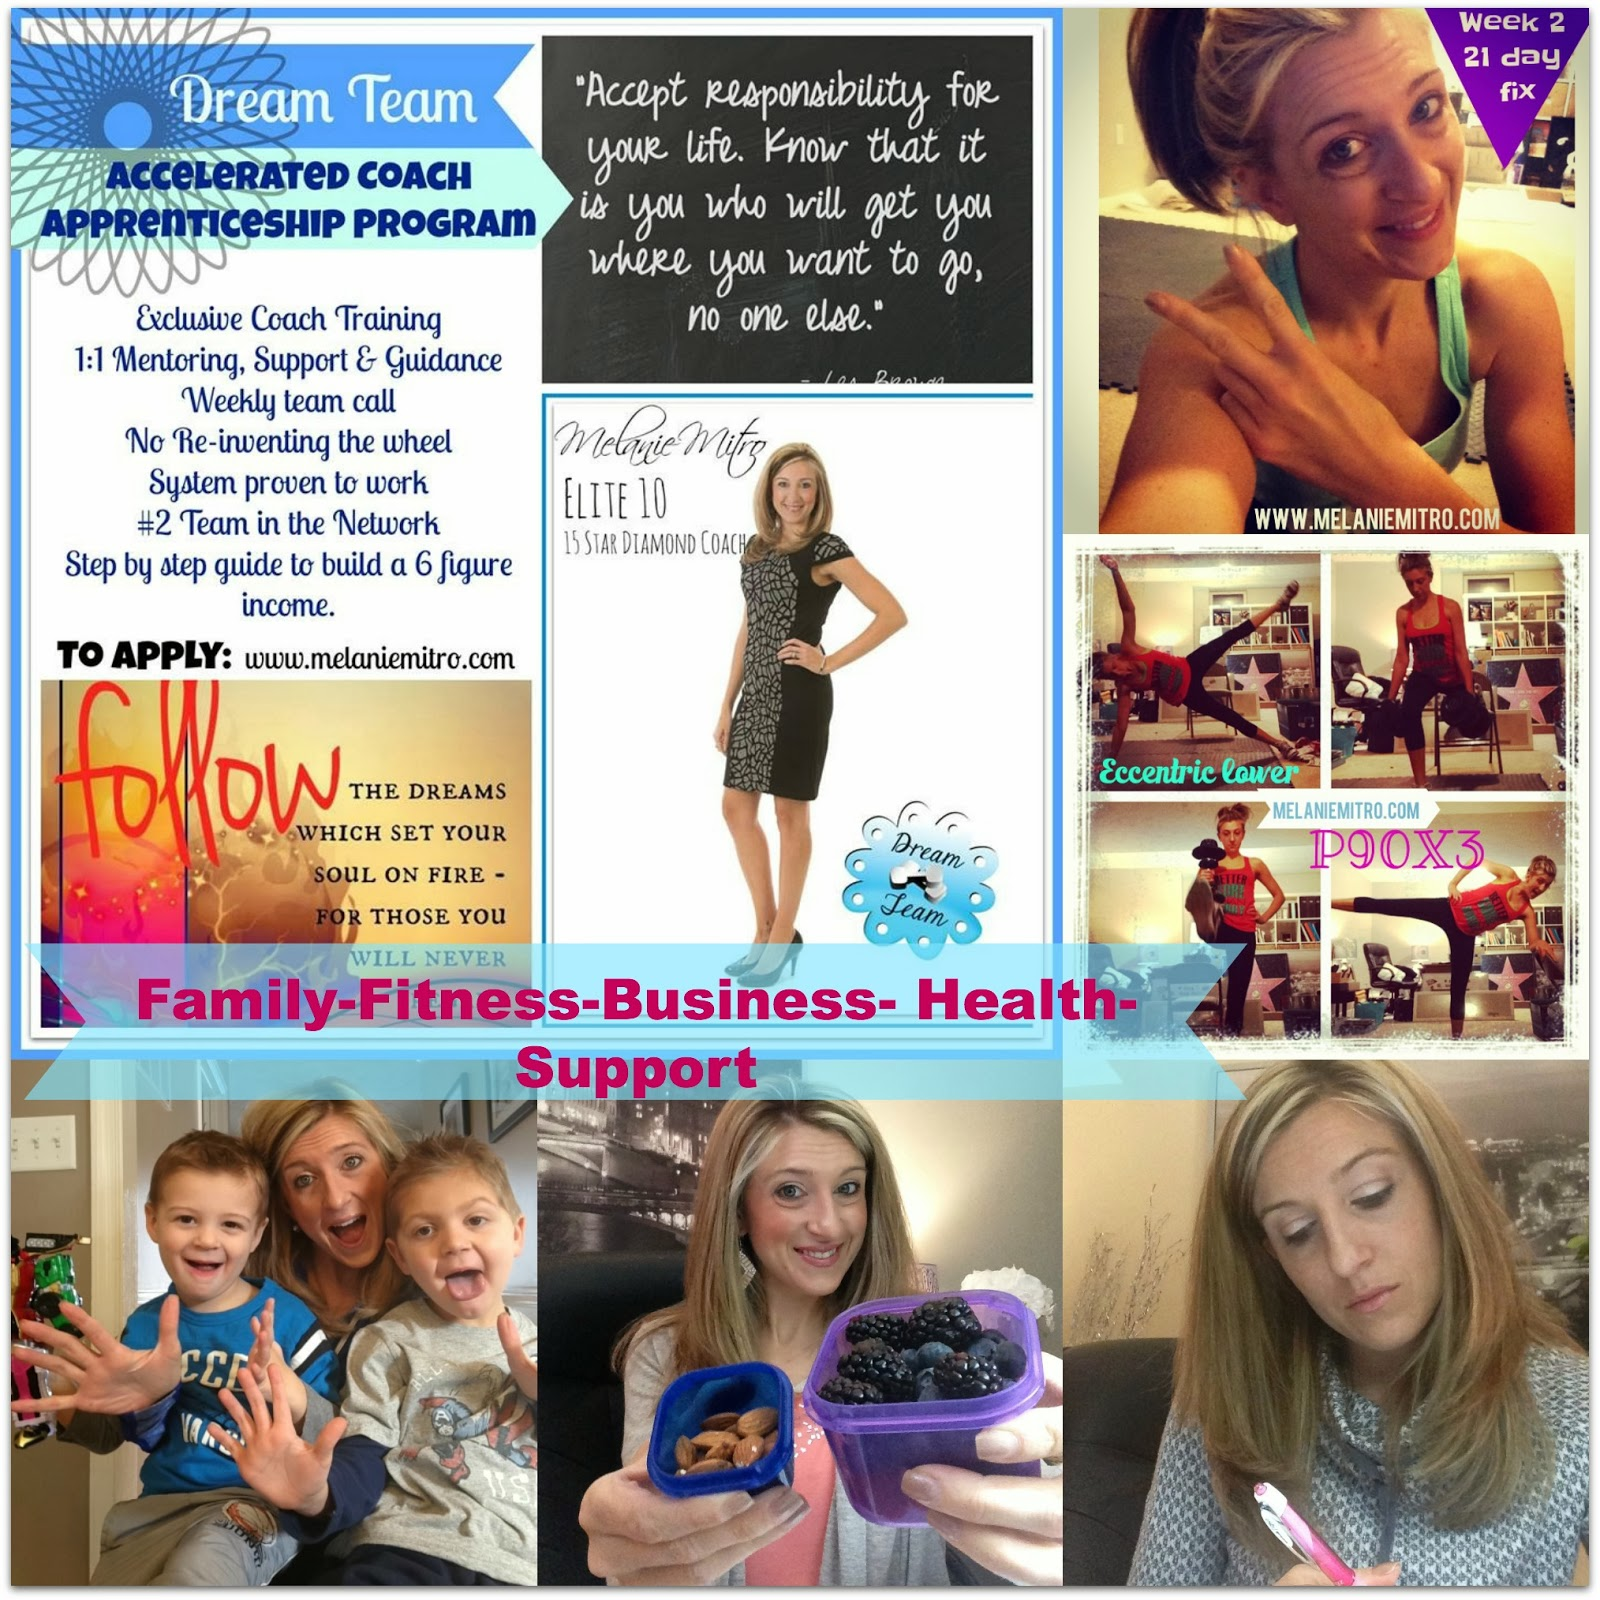 Join a Successful Team Beachbody Business with Normal People like you